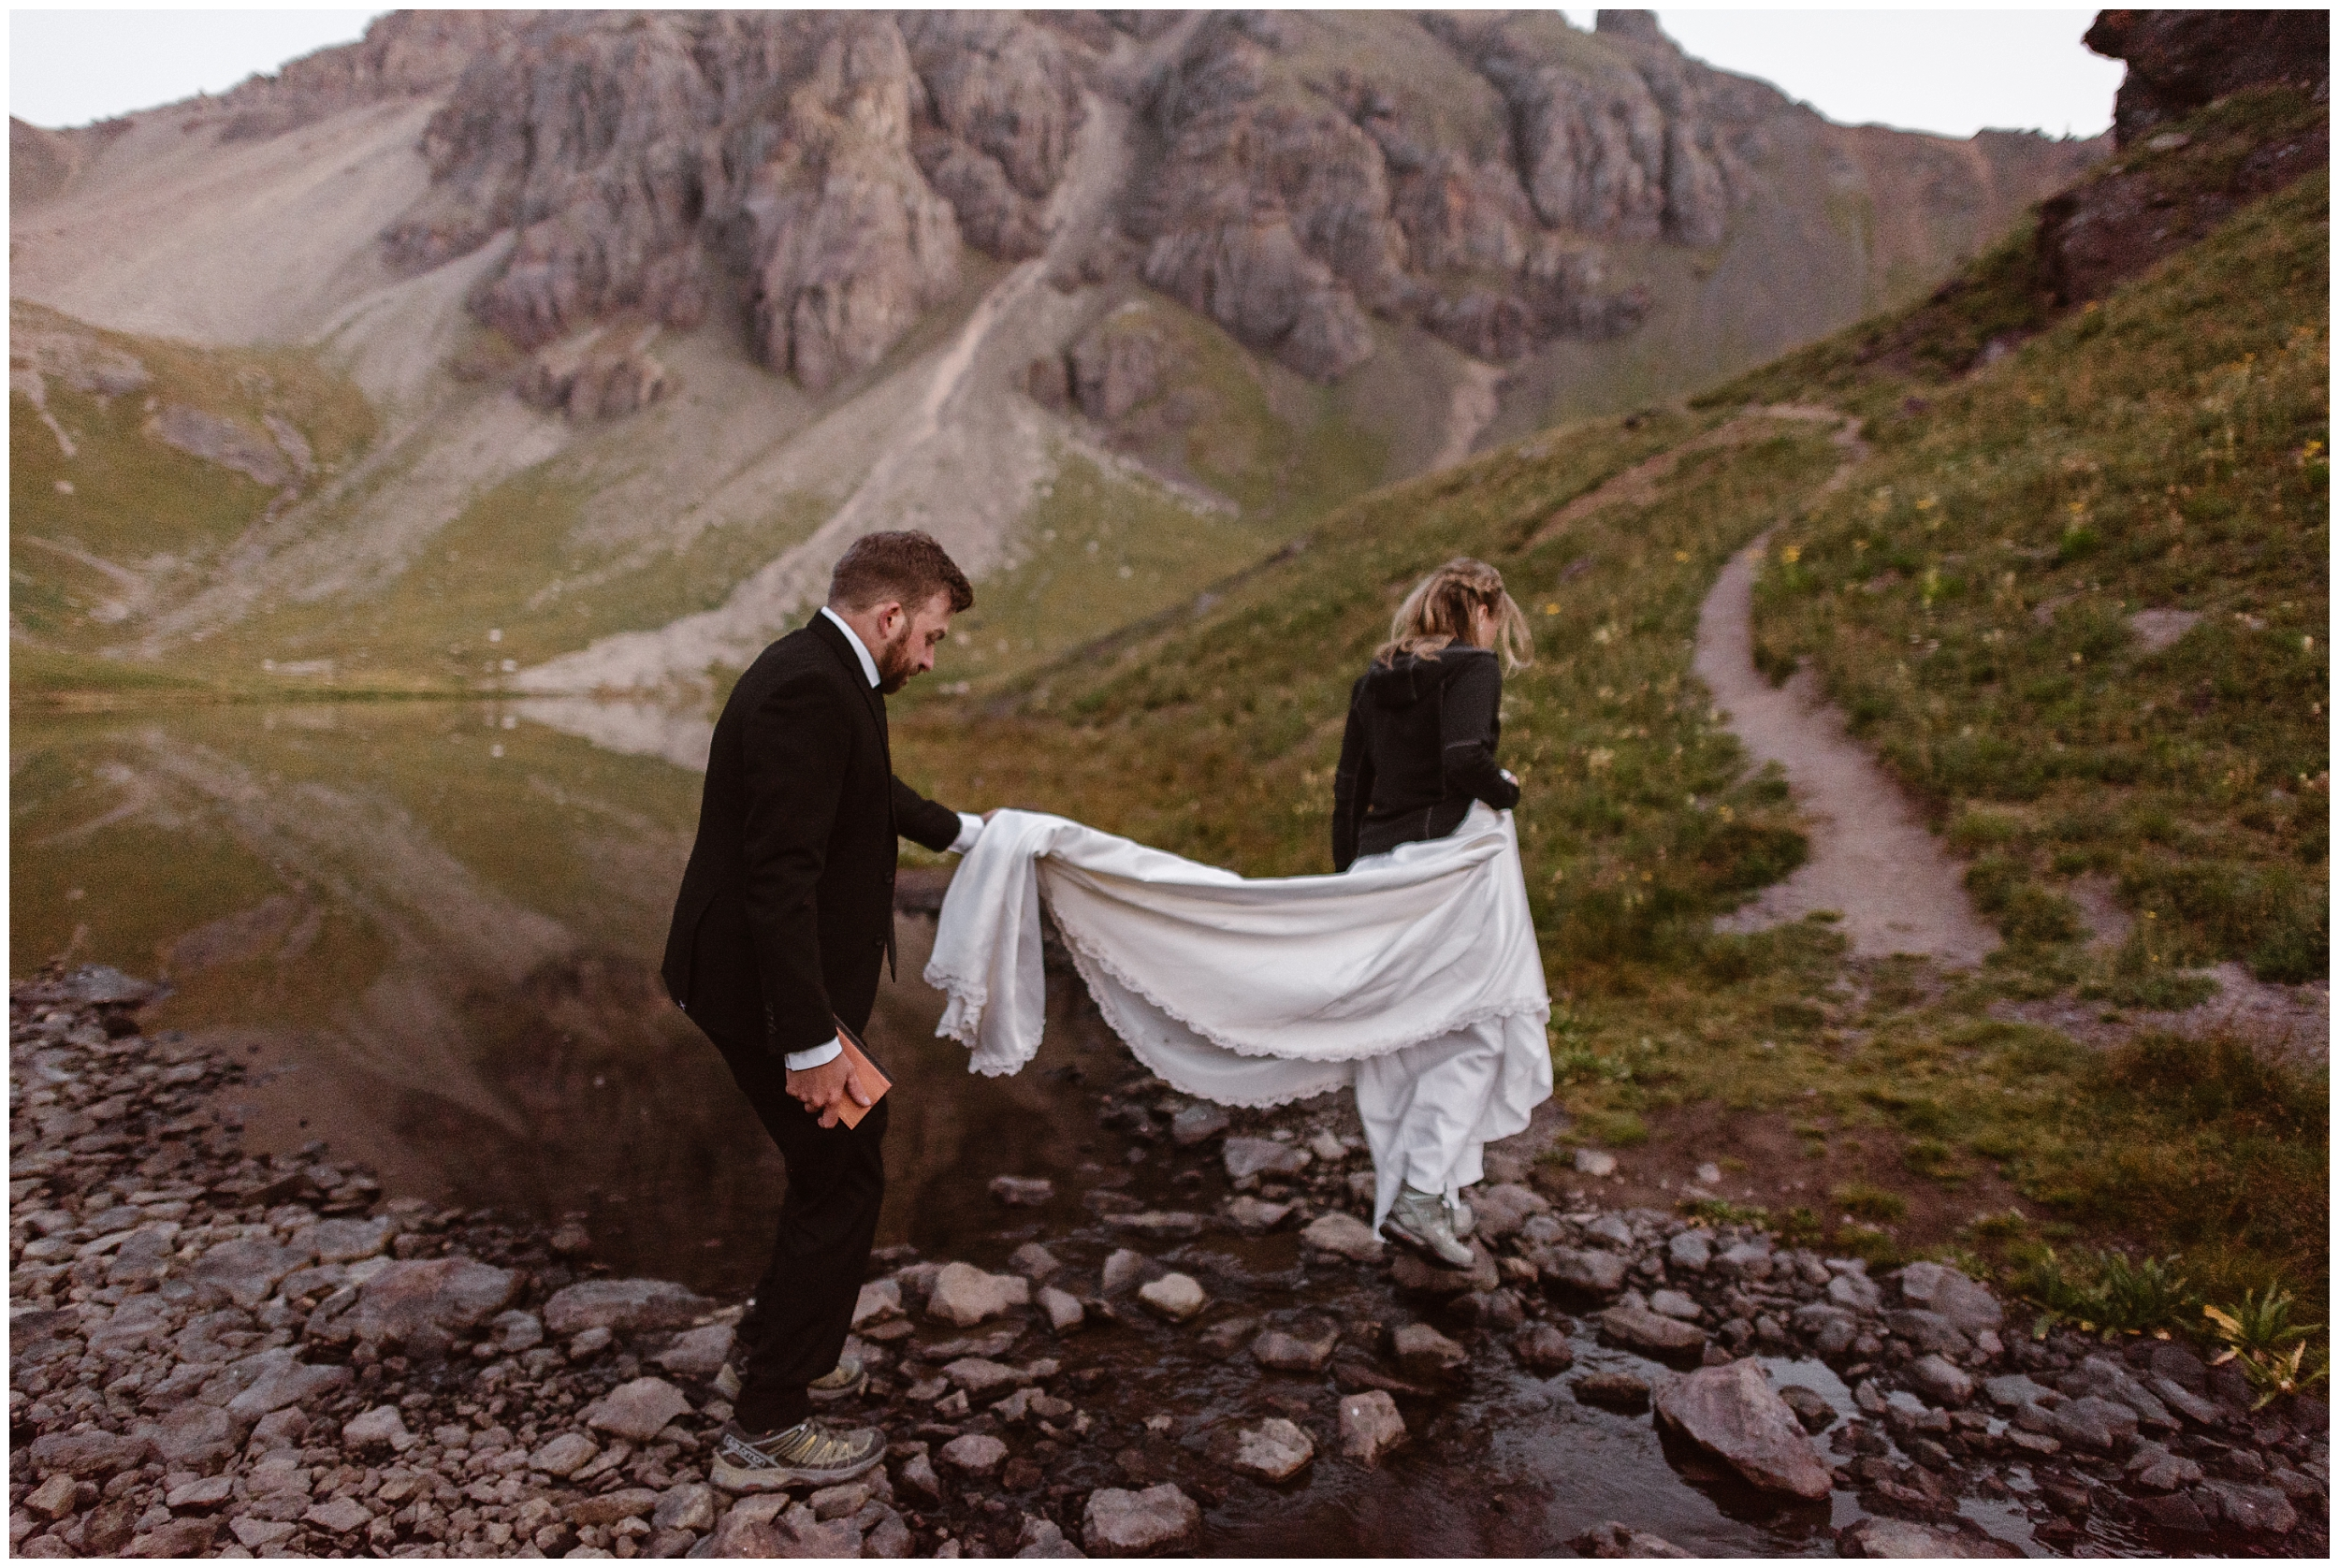 Nick holds back Brecka's wedding dress as they cross over a stream while hiking to the spot they chose for their elopement ceremony. This Colorado mountain wedding was the small simple wedding they both wanted.